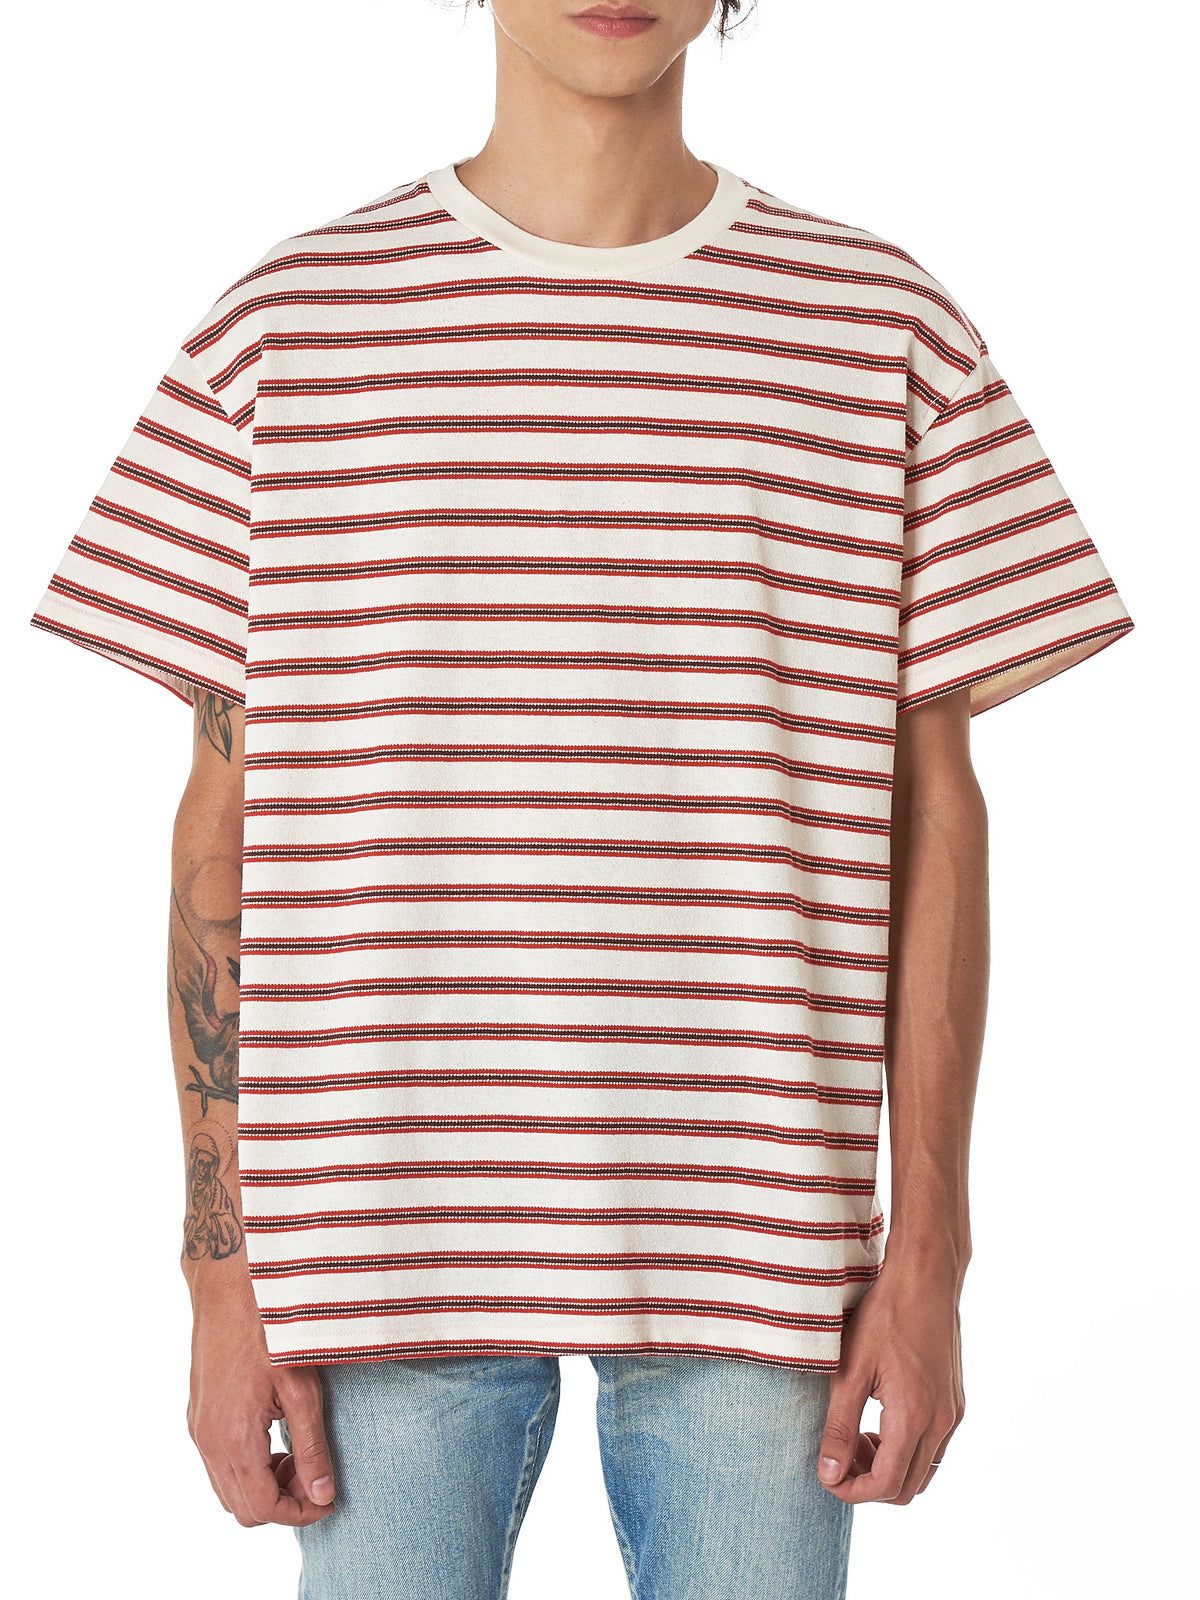 John Elliott Striped Tee Shirt - Hlorenzo Front